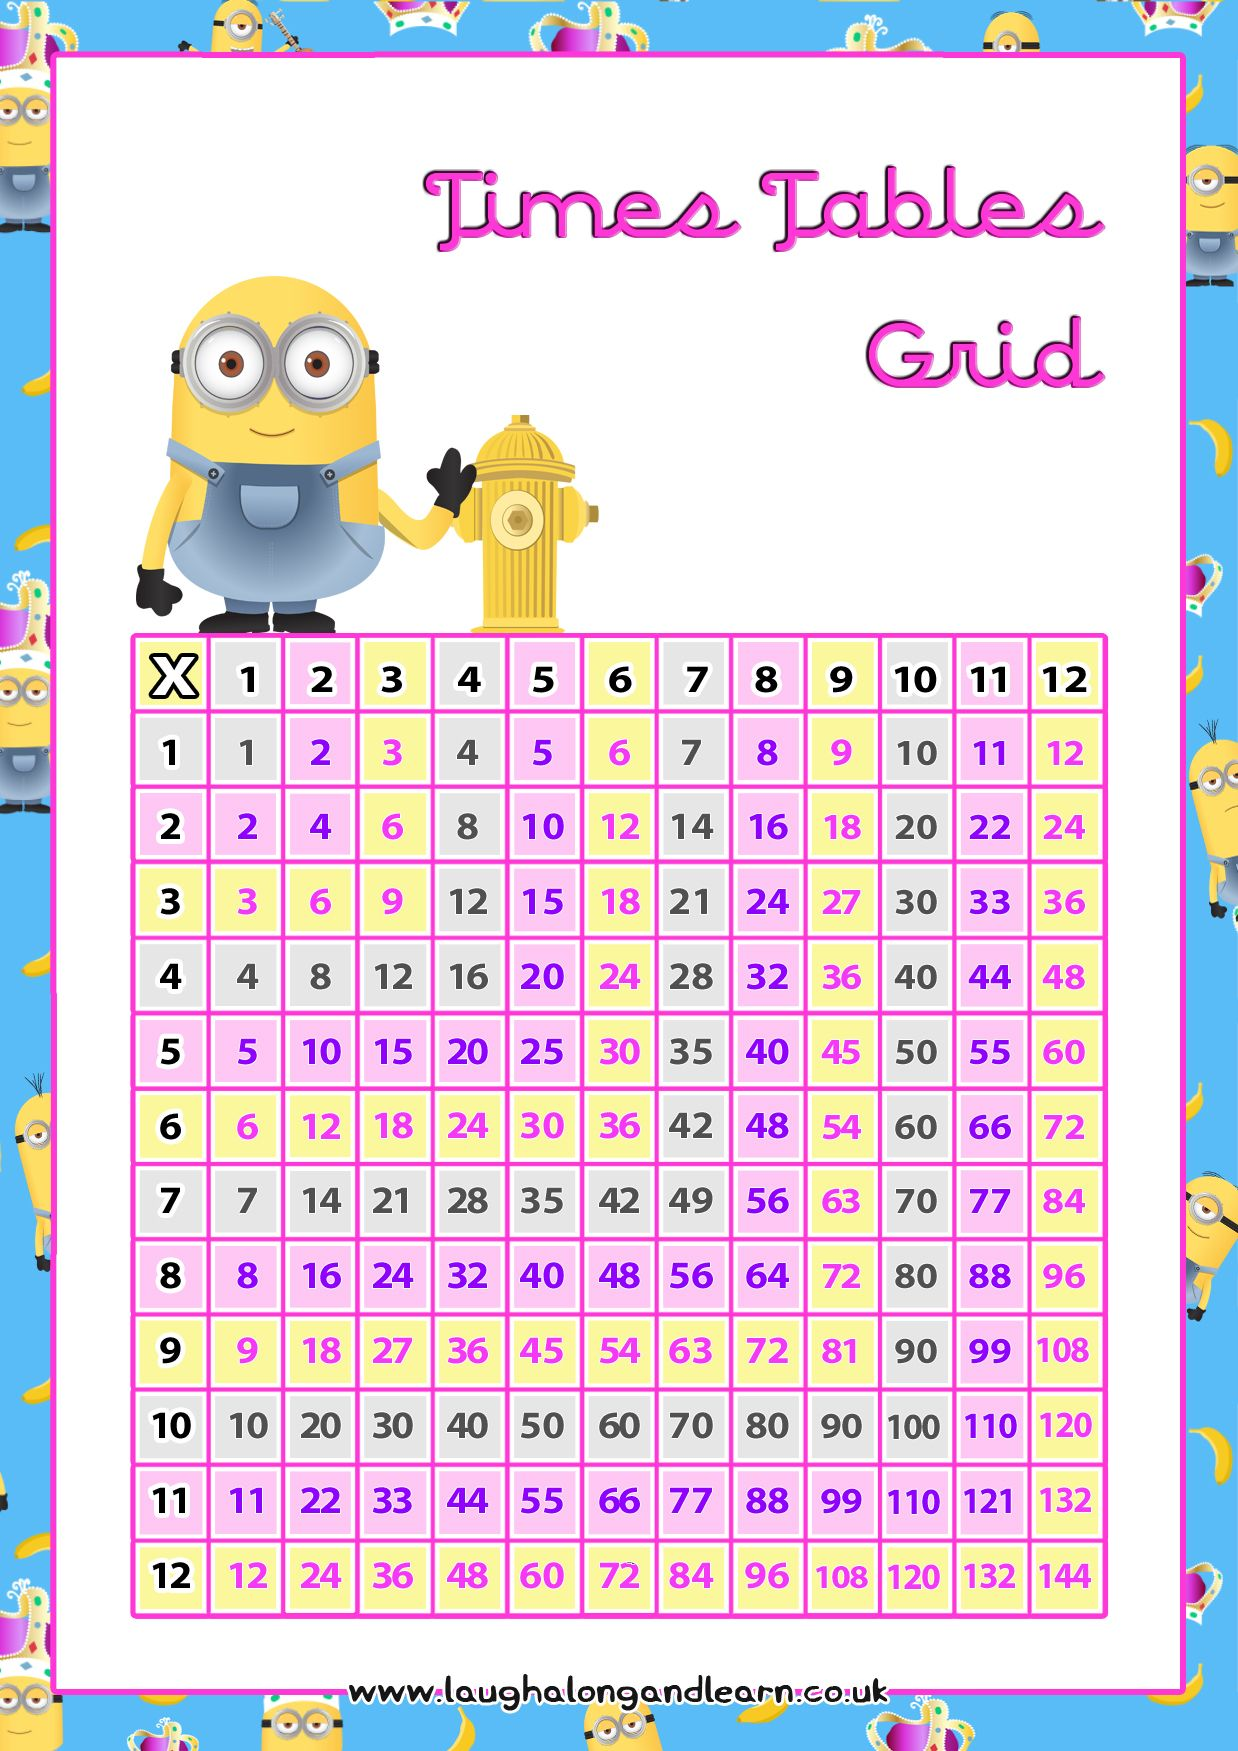 Download Your Free A4 Times Tables Grid By Laugh Aong